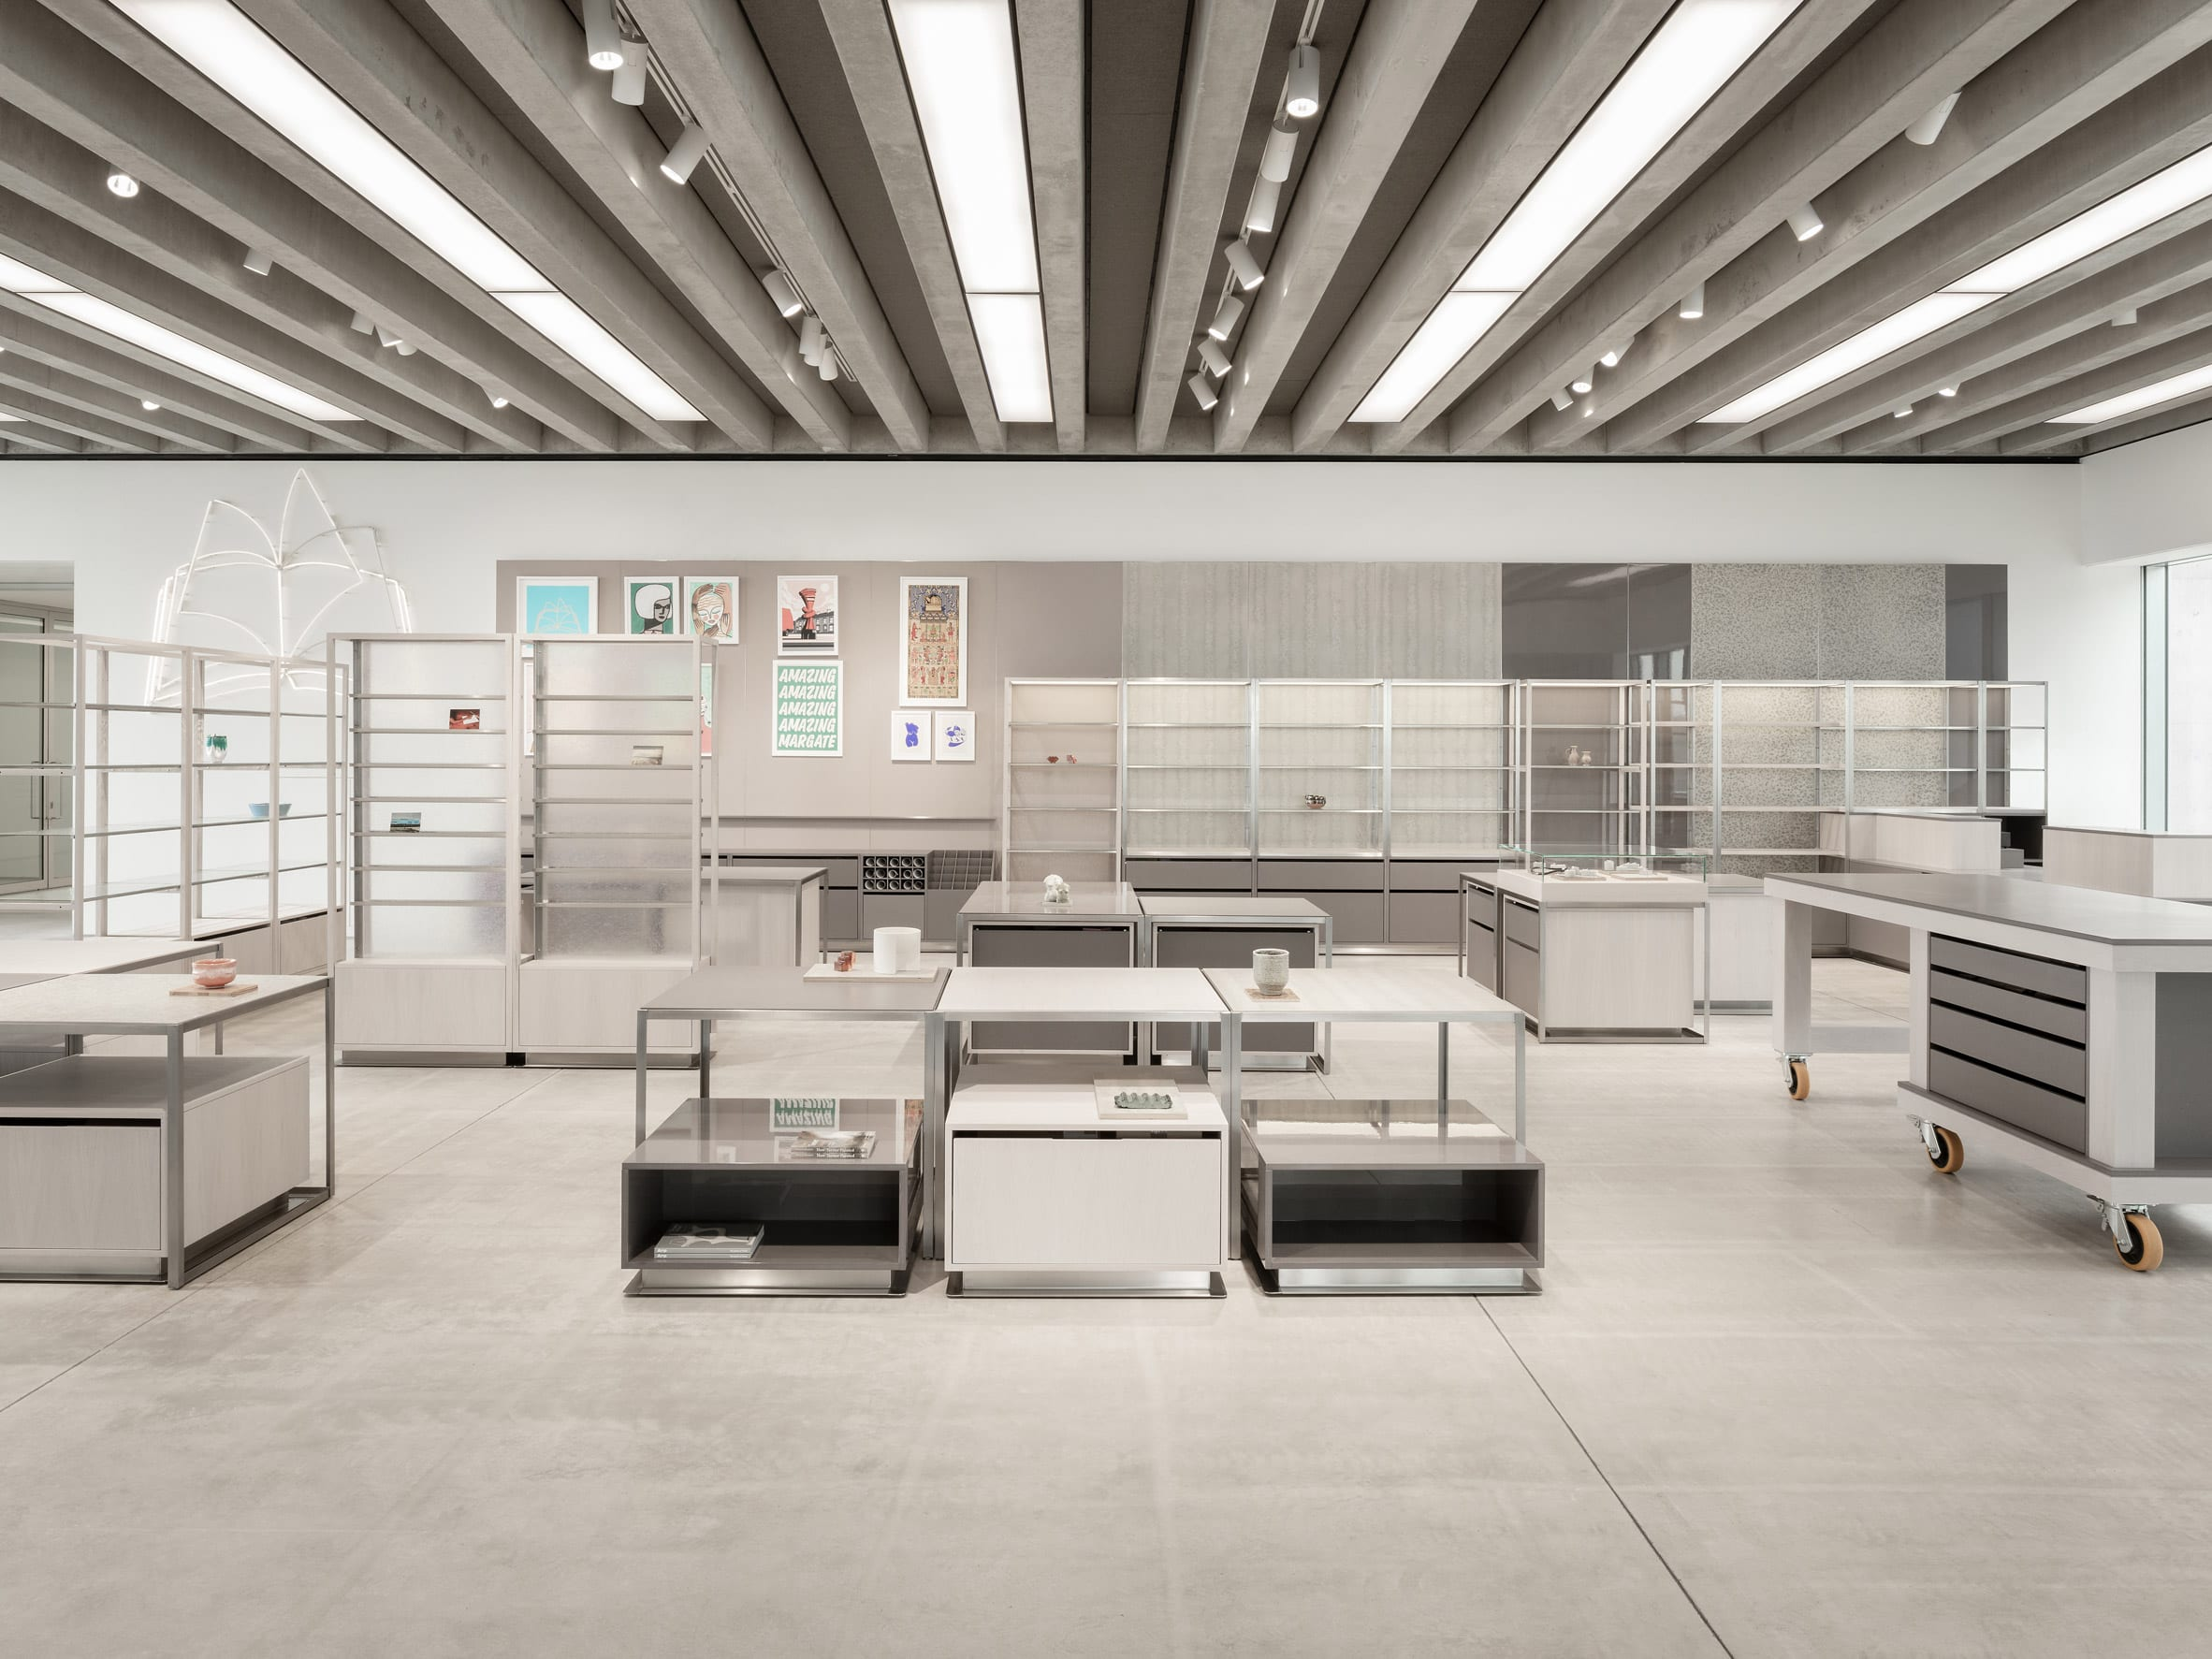 Shop interior by Daytrip with low display tables and a row of shelves